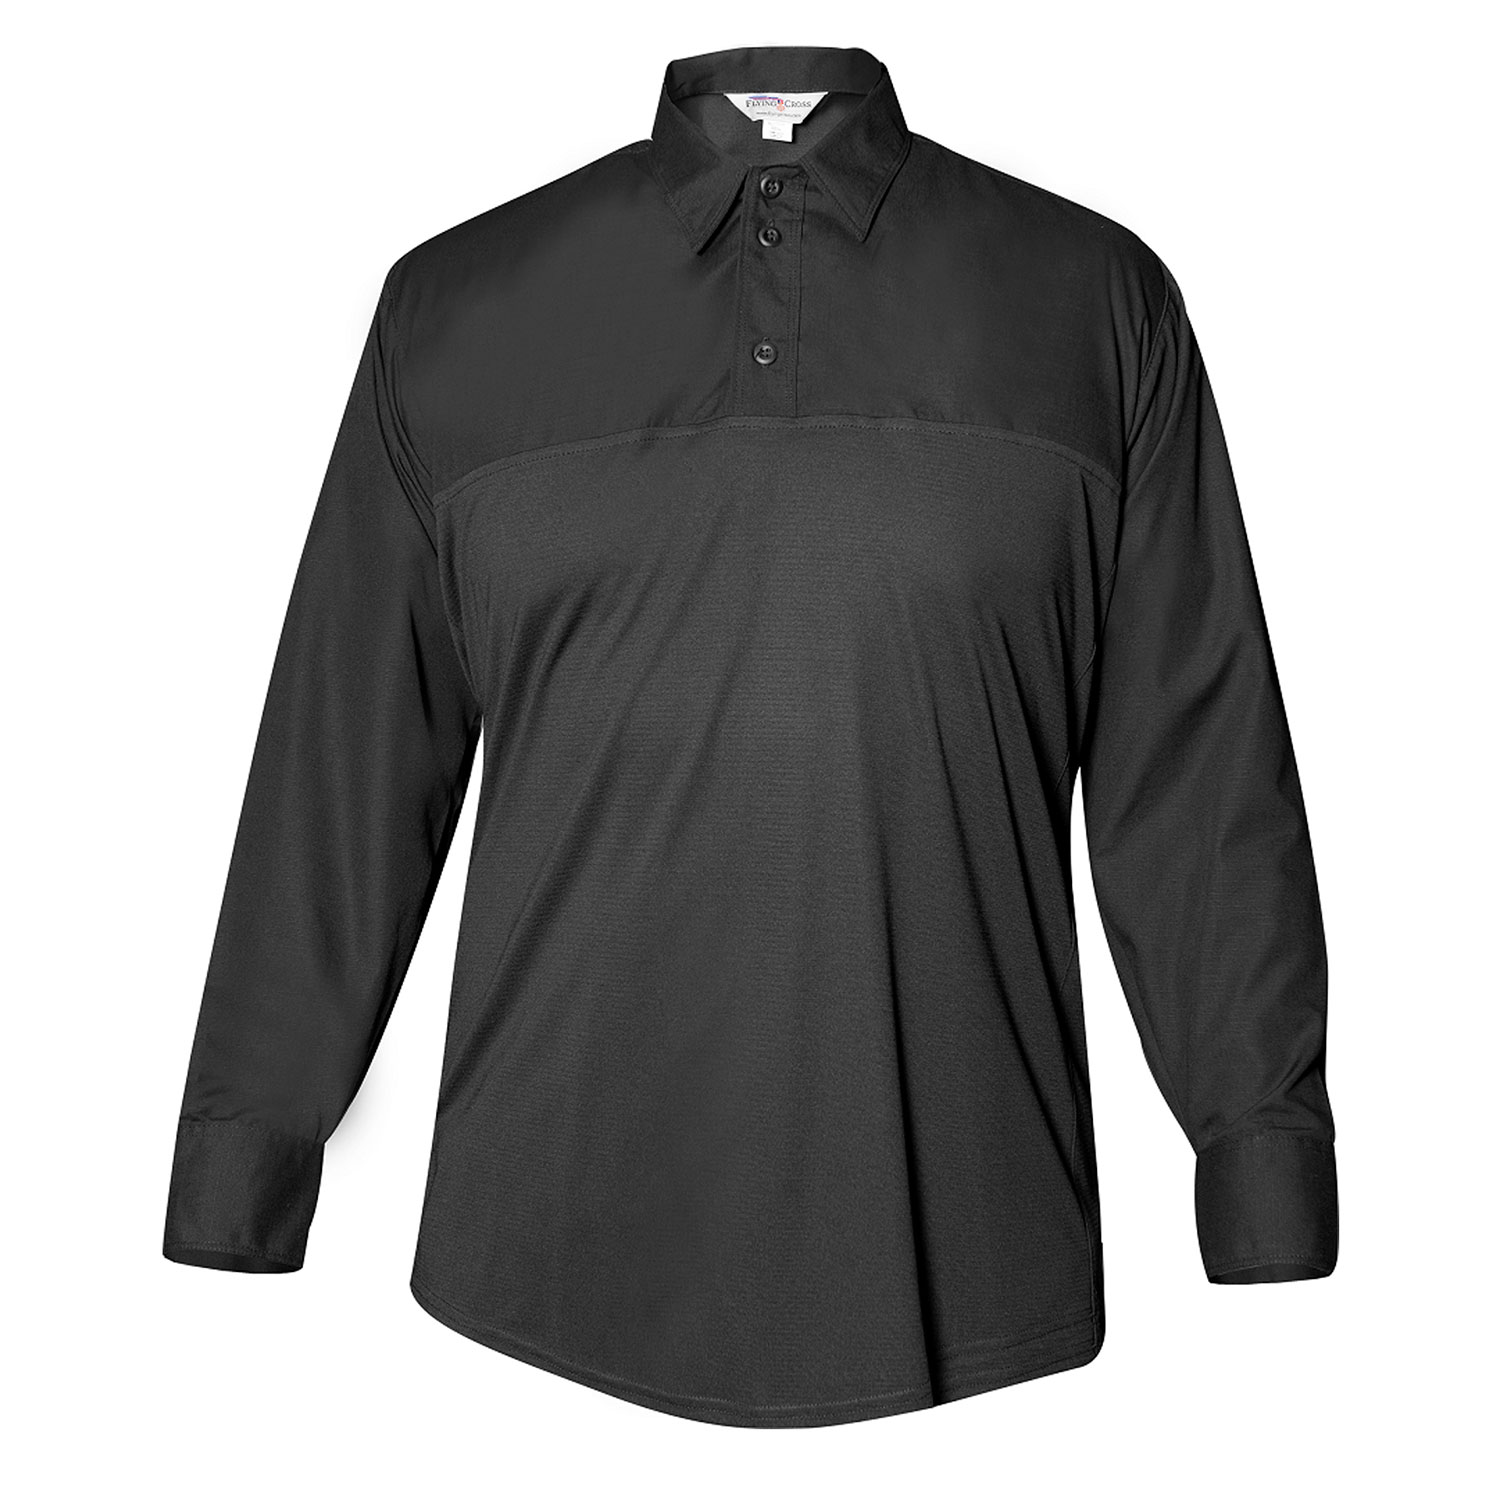 Flying Cross Cross FX Long Sleeve Class B Style Hybrid Shirt